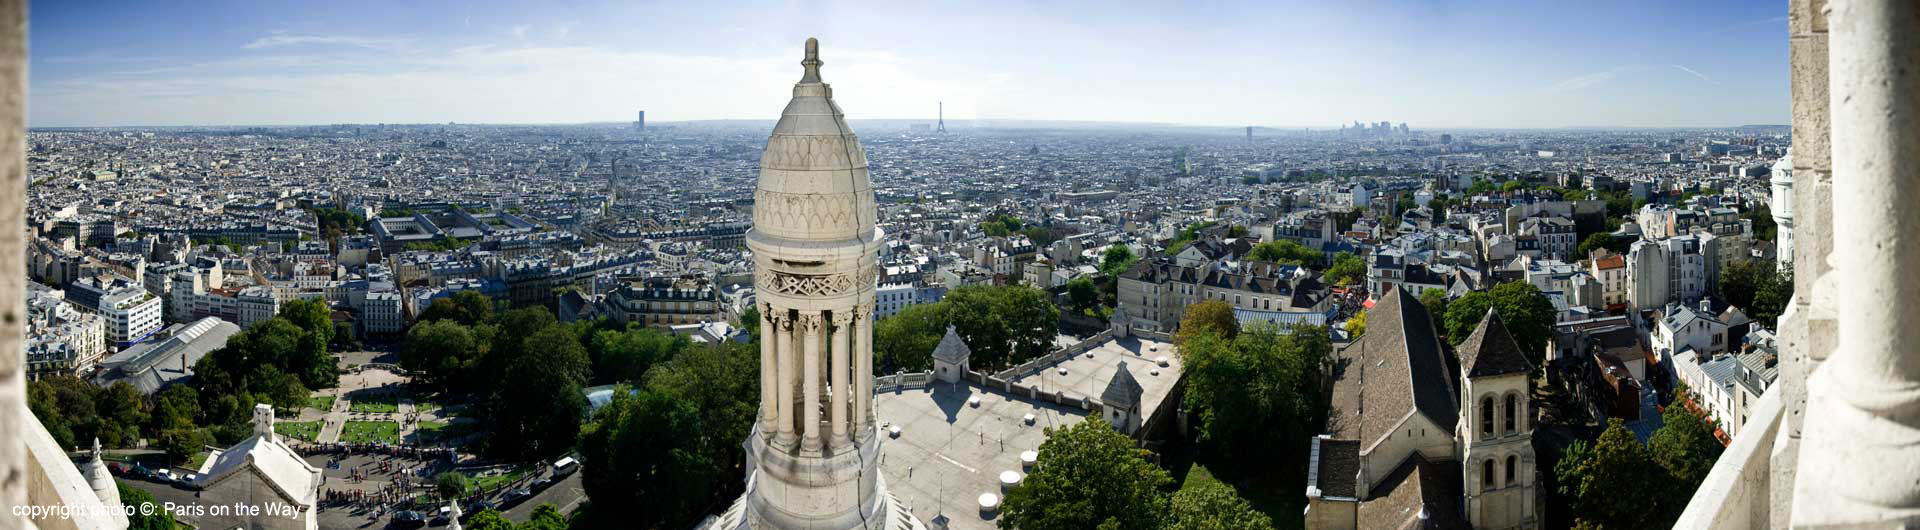 VIEW OF PARIS FROM SACRE COEUR BASILICA